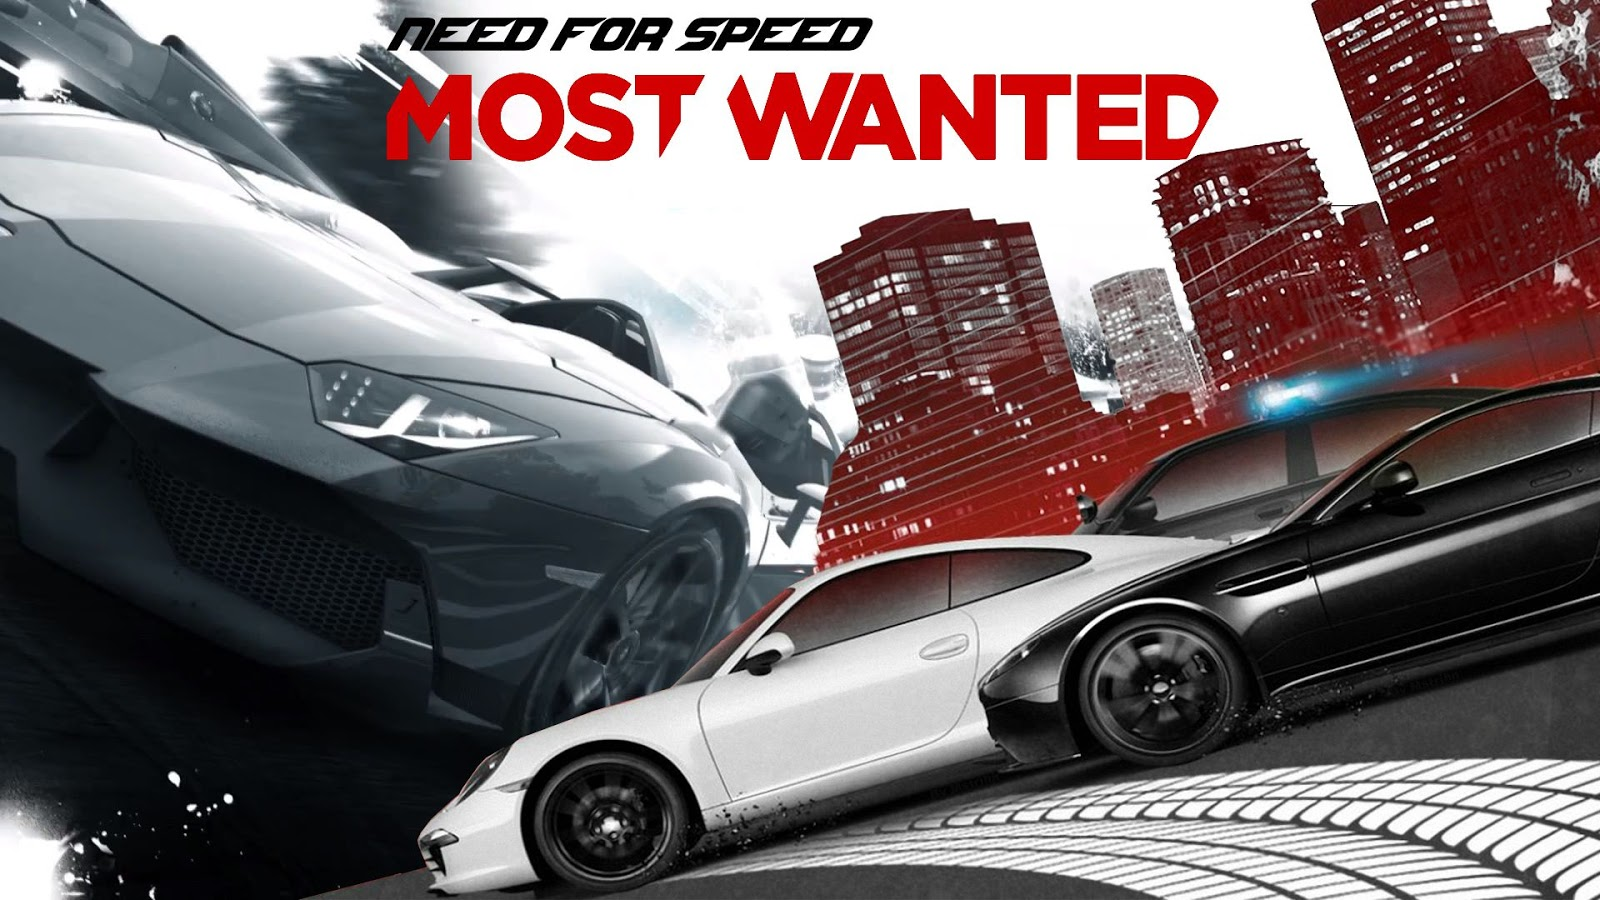 Need For Speed Most Wanted APK + OBB Data For Android - PK Techs